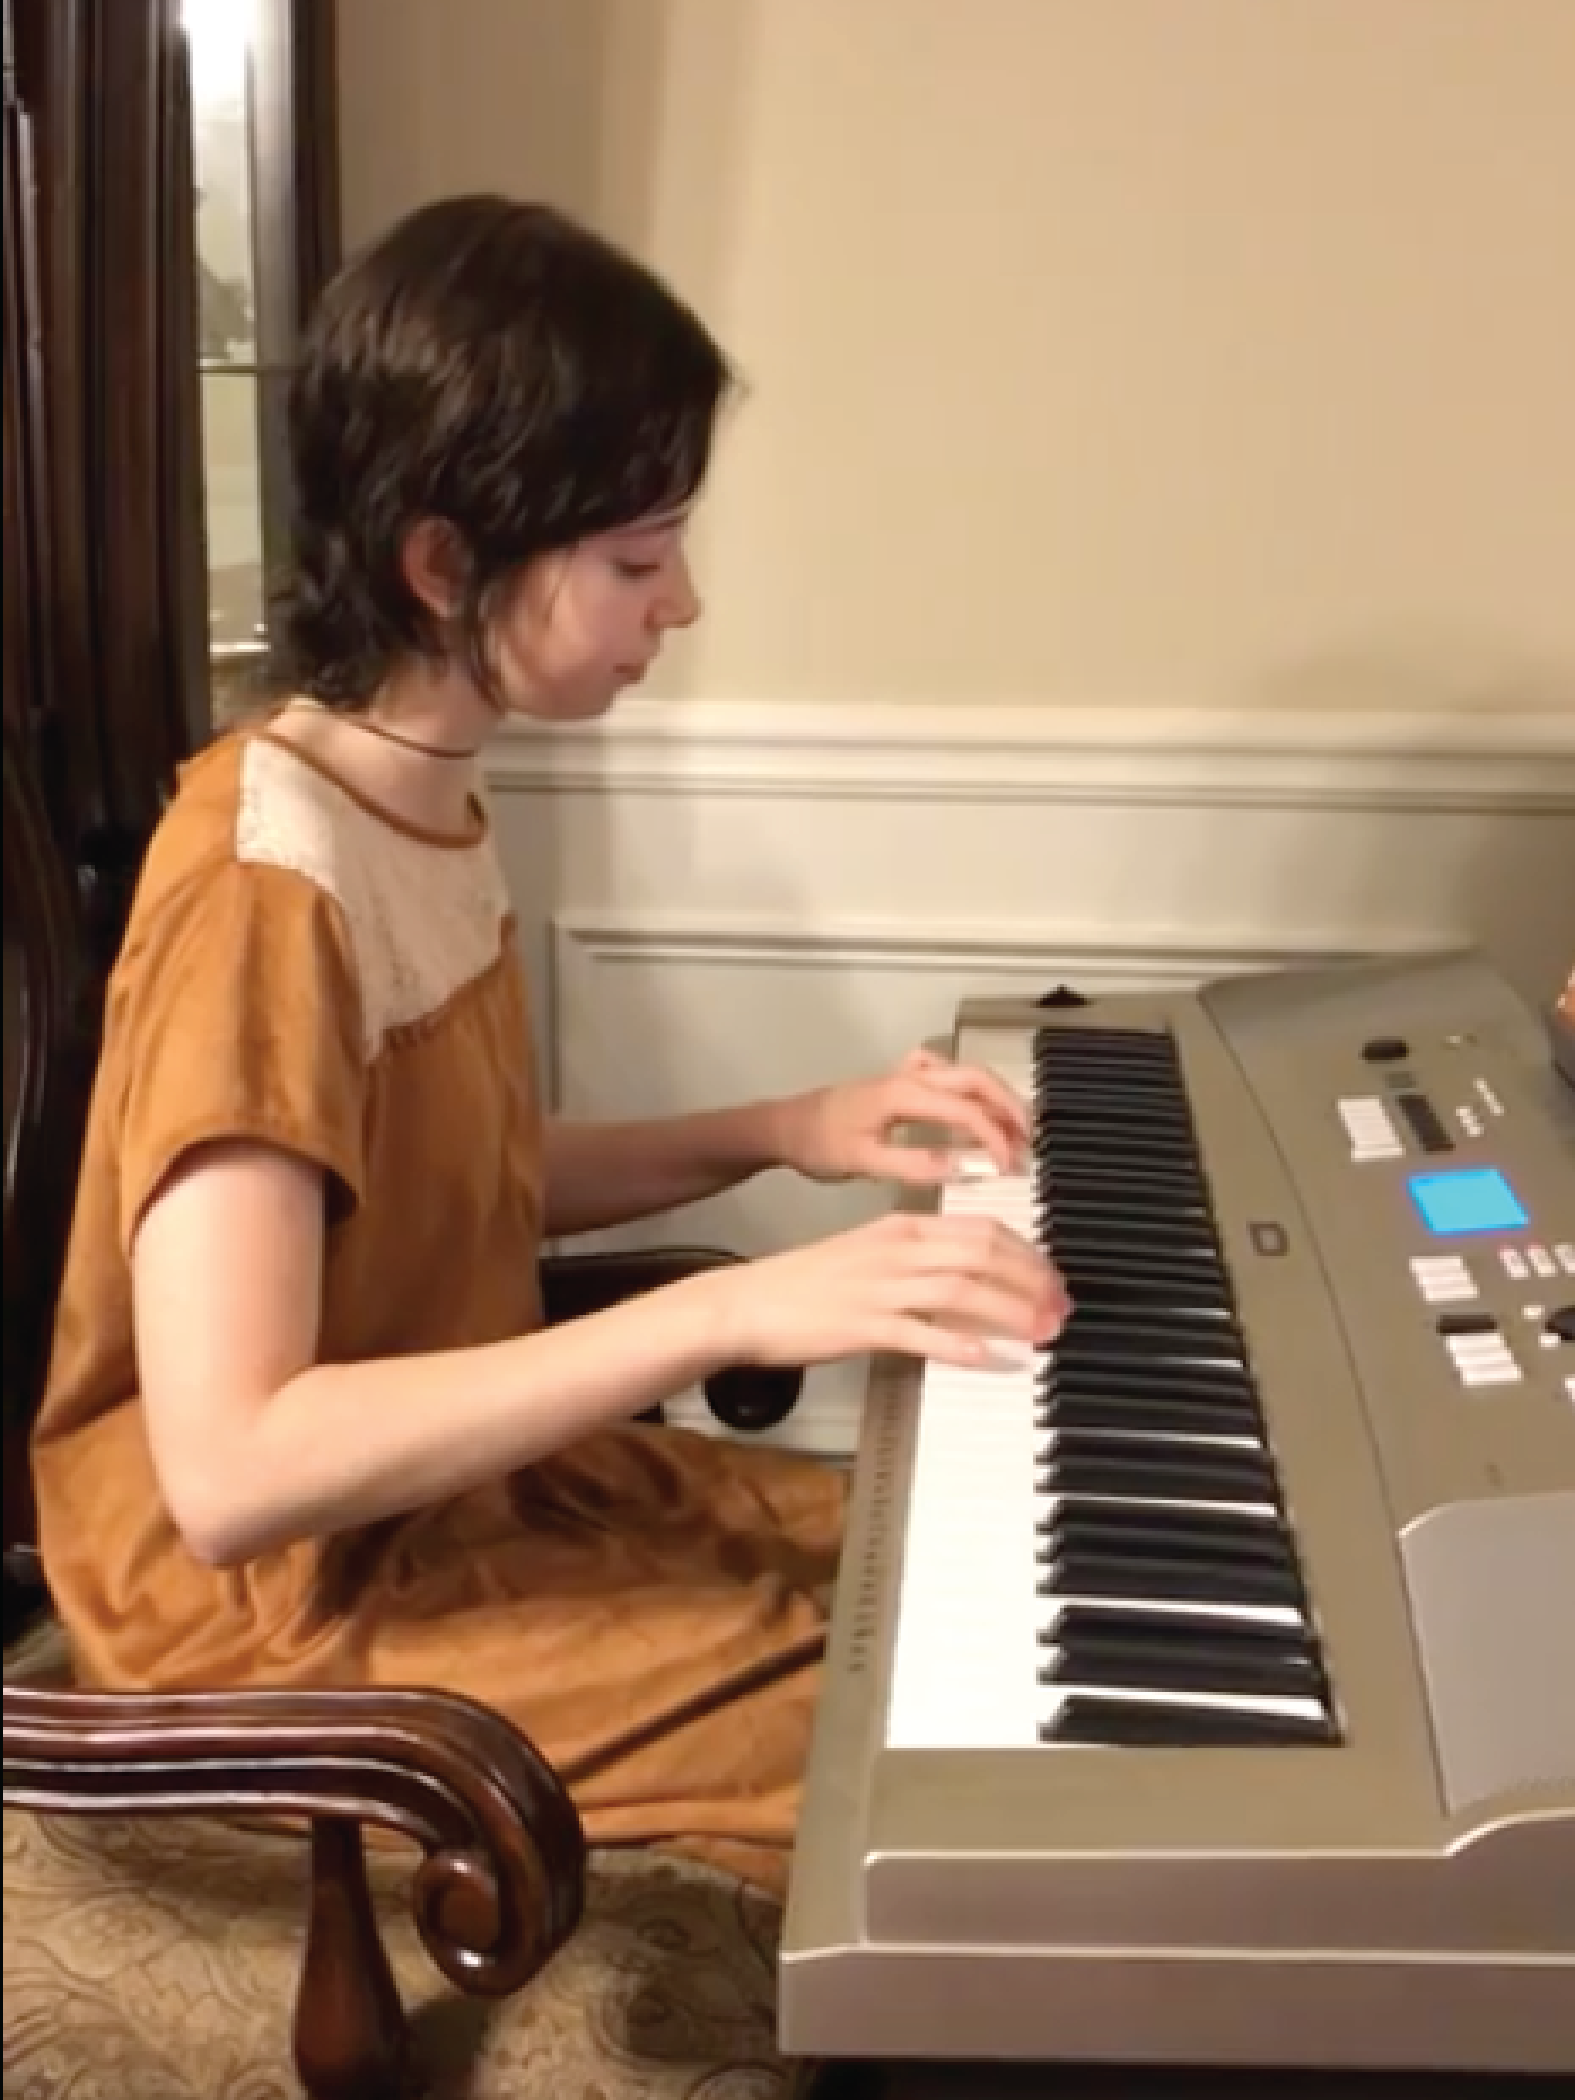 This is a song she loved and I wanted to share it with you on today, her six month anniversary into heaven.  Over 4400 likes on Instagram   https://youtu.be/NEKsynt8bUo